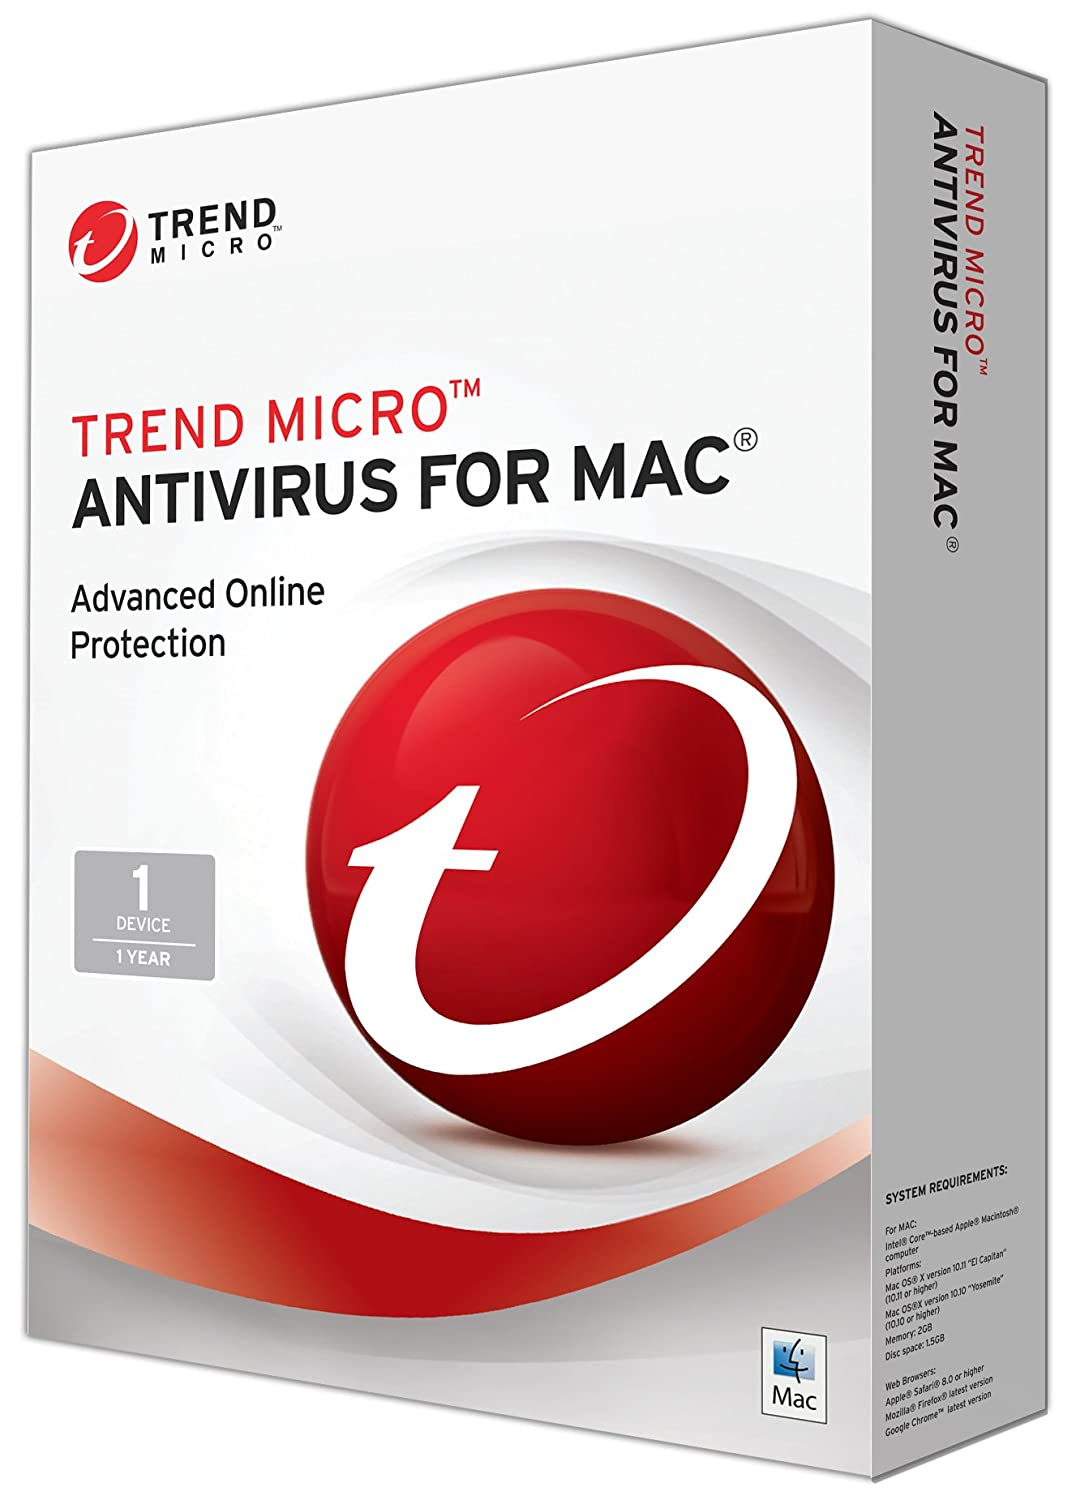 Madison : Trend micro antivirus mac os x